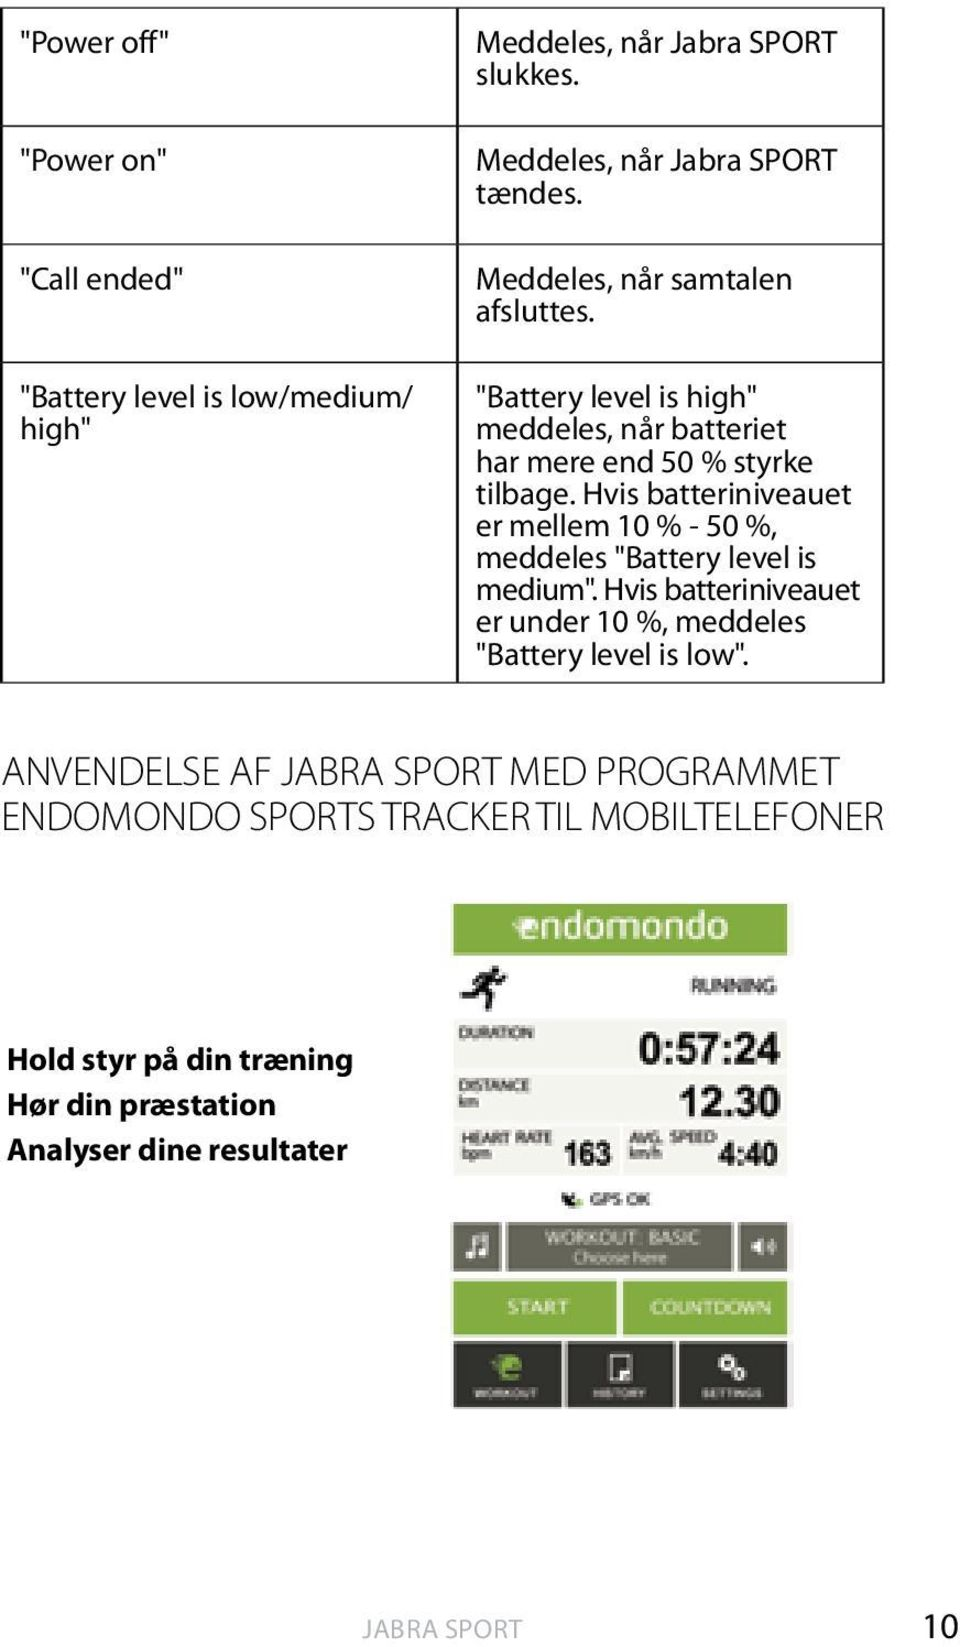 "Hvis batteriniveauet er mellem 10 % - 50 %, meddeles ""Battery level is medium""."